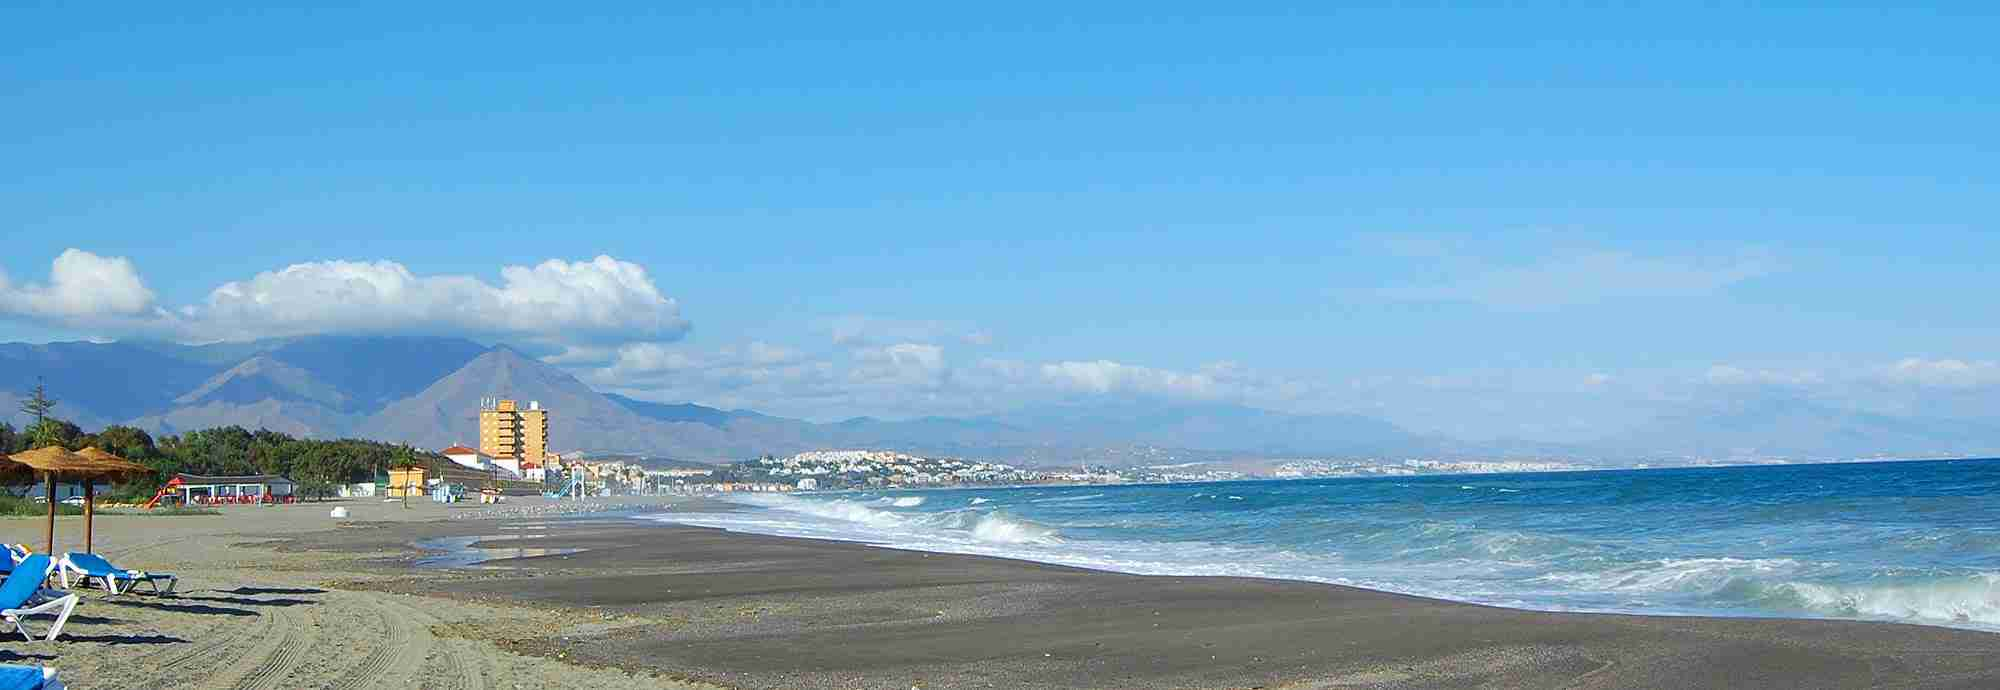 Large Holiday  Villas in Costa del Sol near the beach